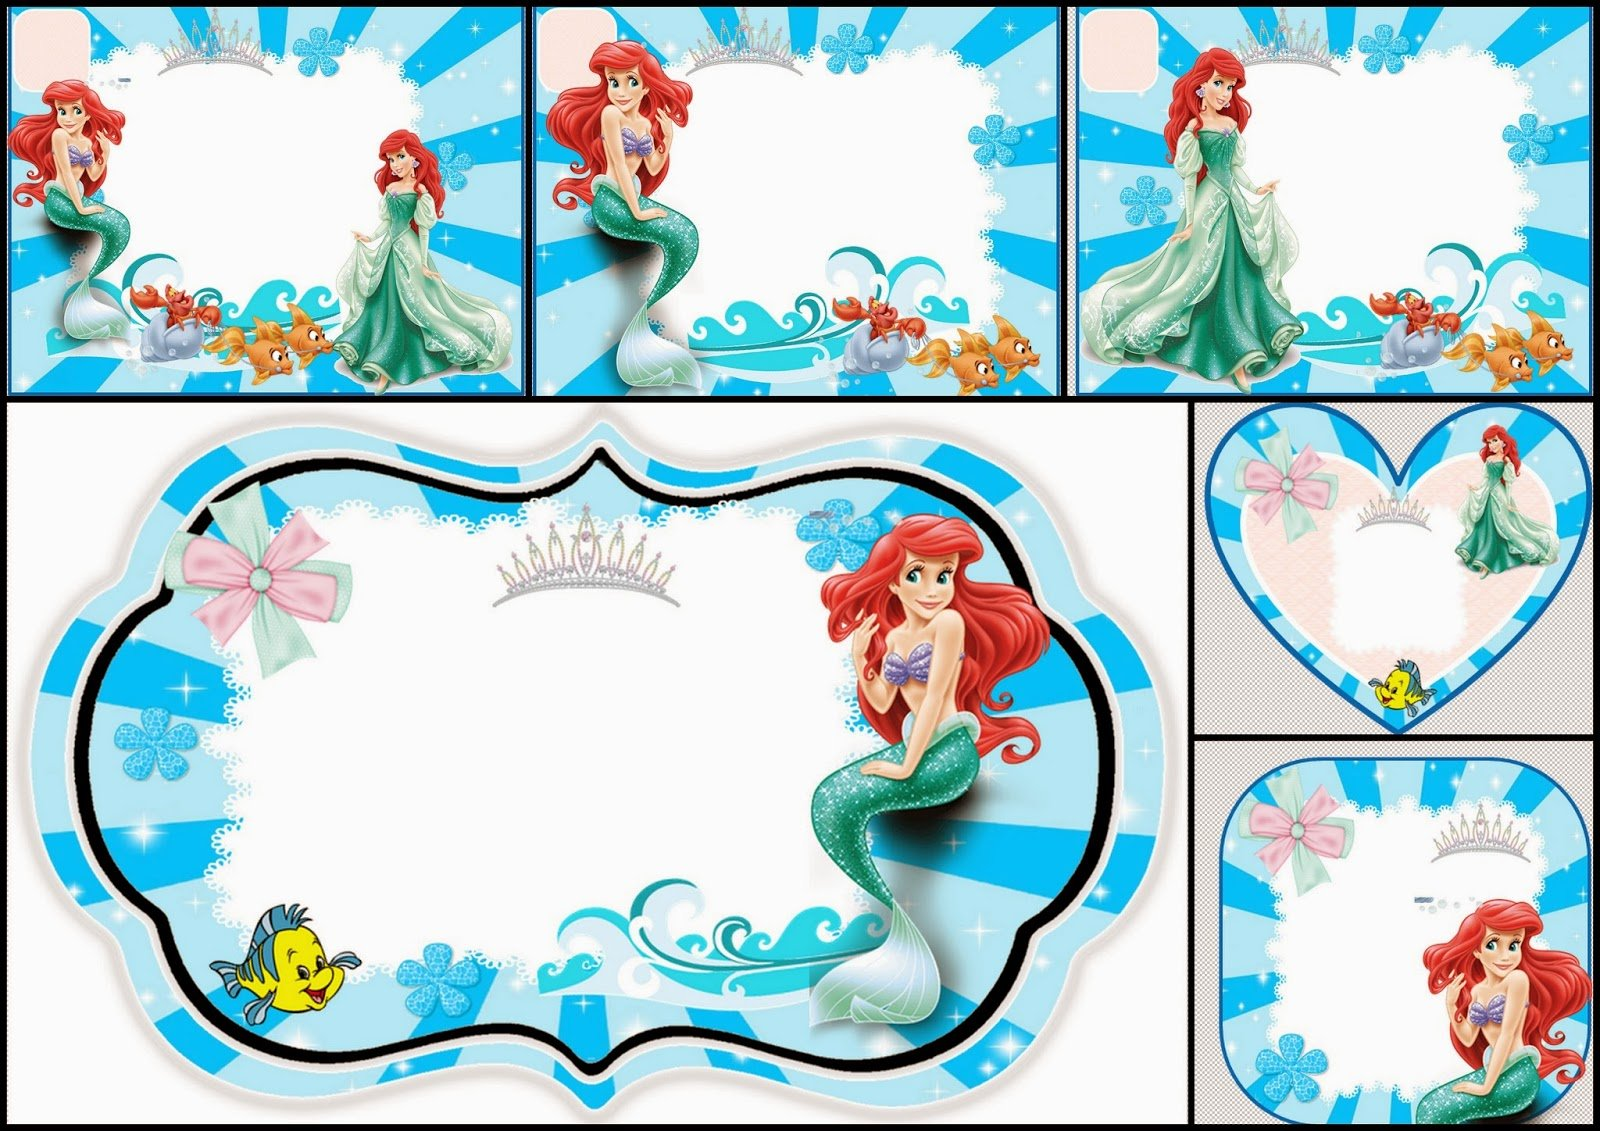 The Little Mermaid Free Printable Invitations, Cards Or Photo